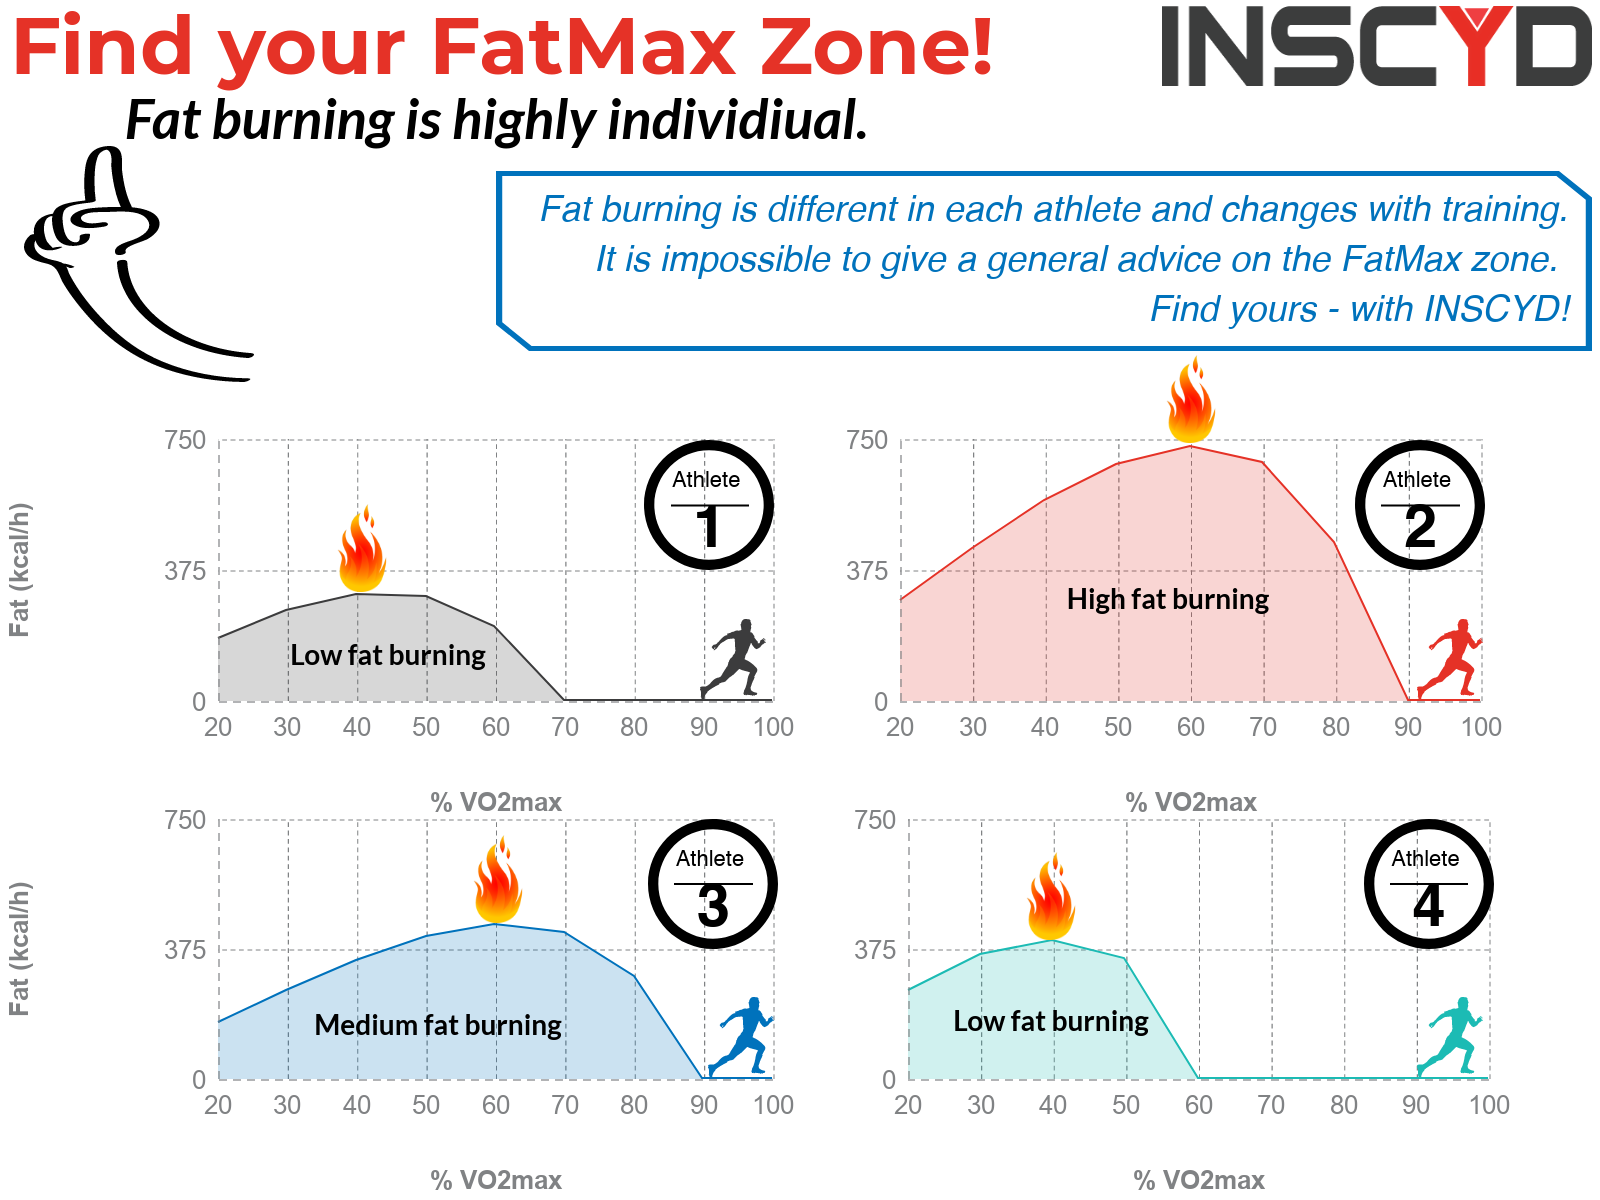 Infographic: Find your FatMAx zone.